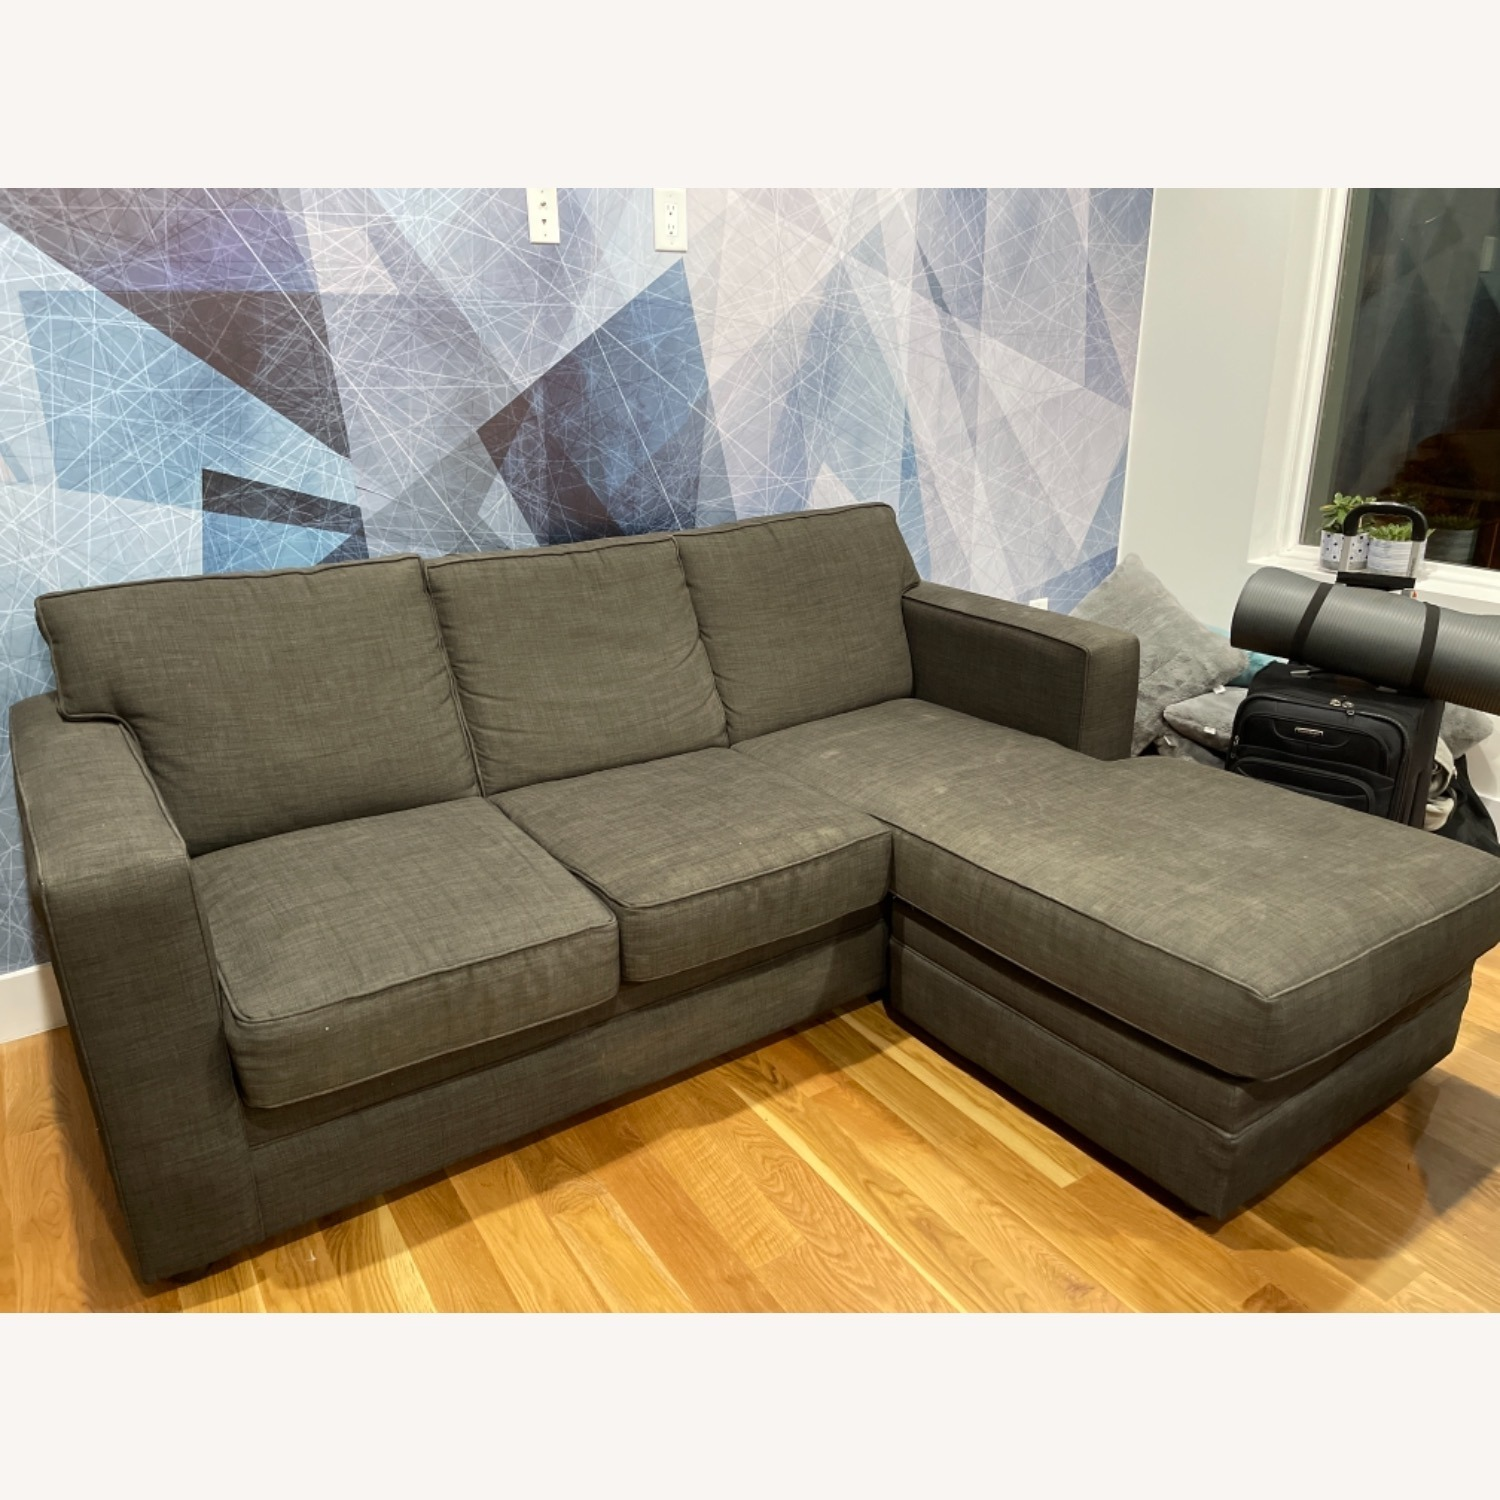 Queen Size Sleeper Sectional Sofa - image-3